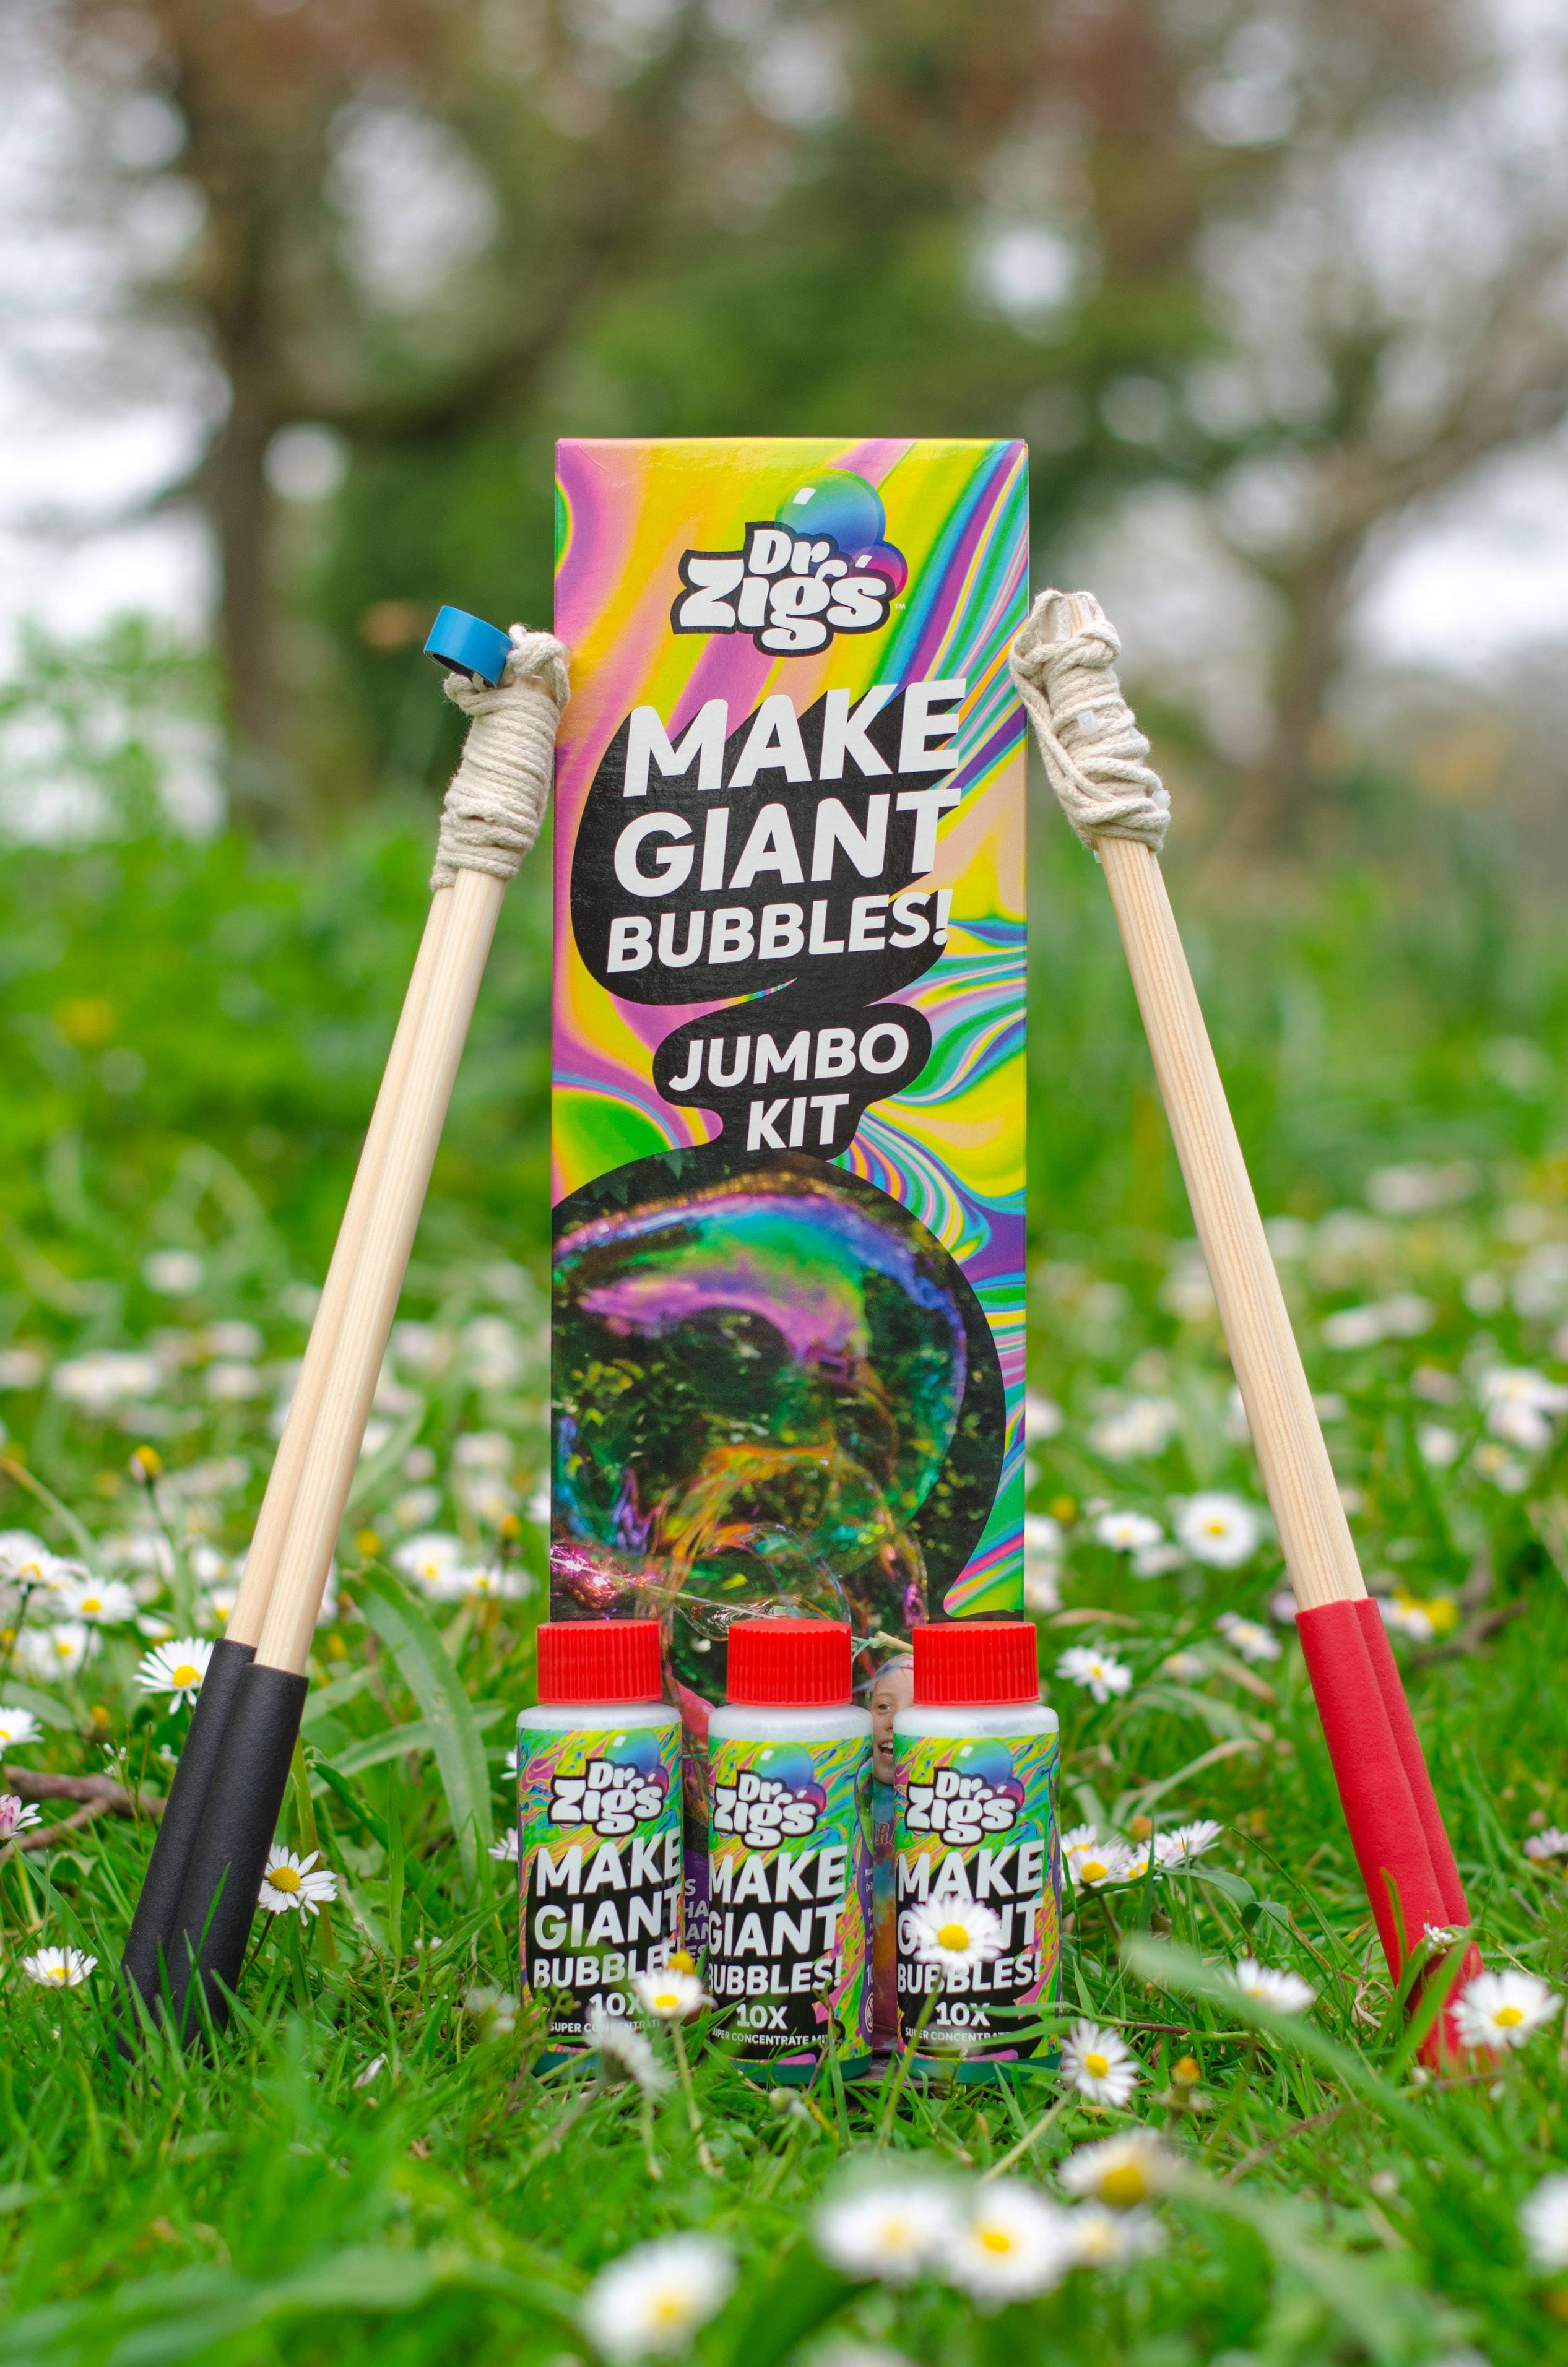 Make Giant Bubbles  - Jumbo Kit - Moo Like a Monkey